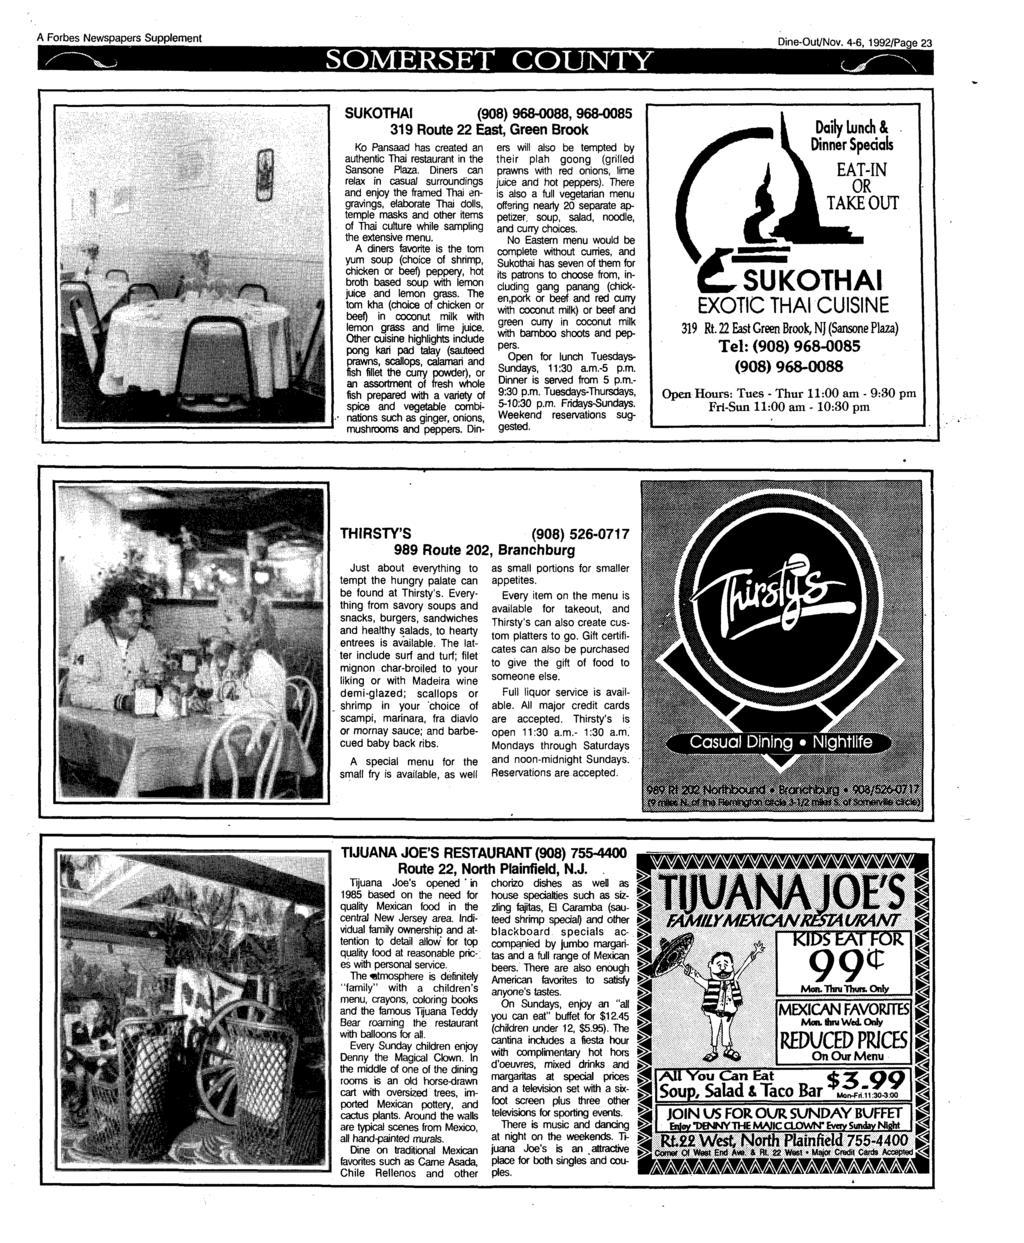 A Forbes Newspapers Supplement SOMERSET COUNTY Dine-Out/Nov.